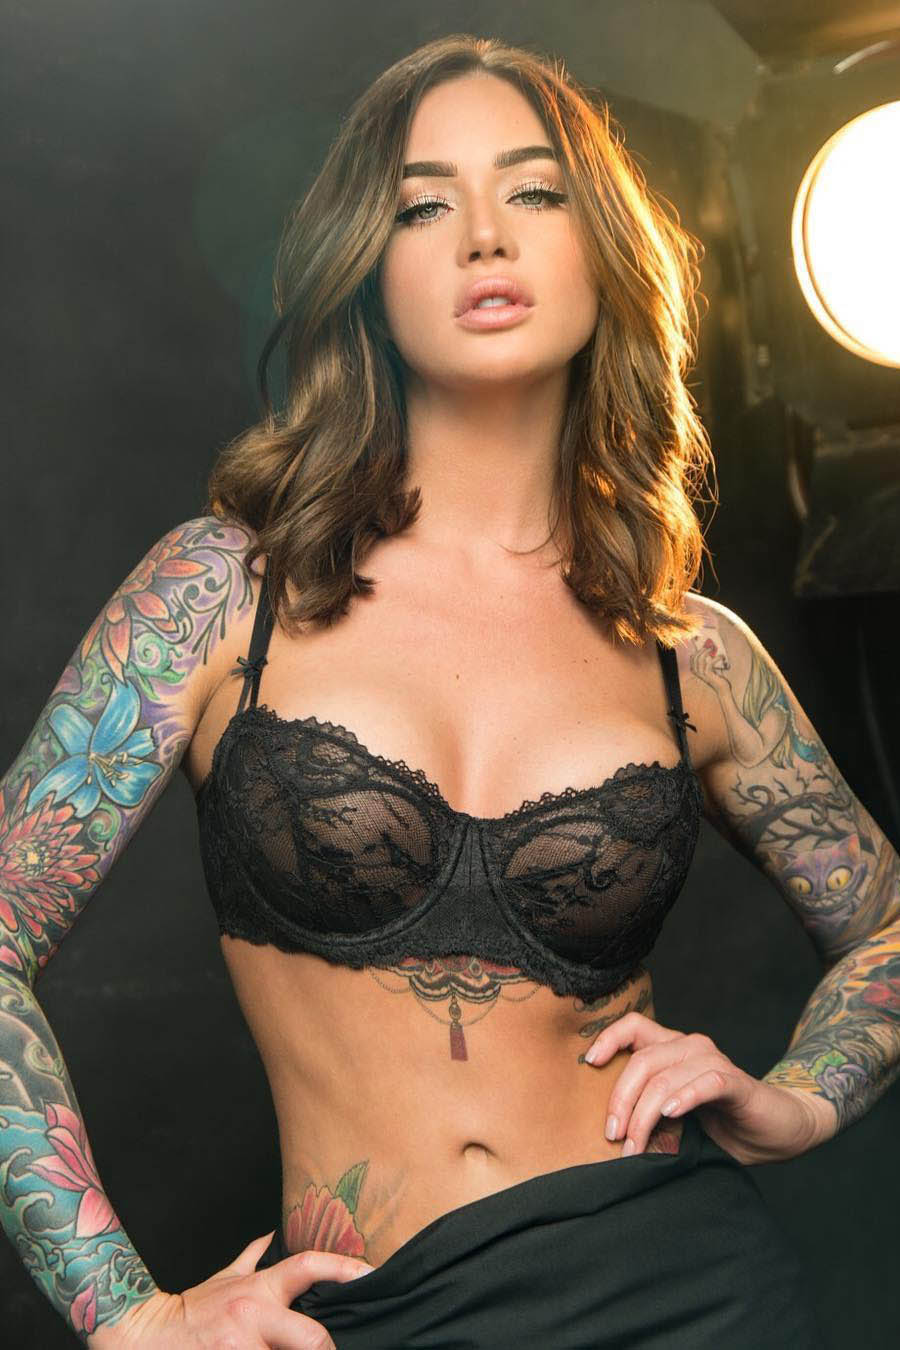 Escort model with tattoos Bozena